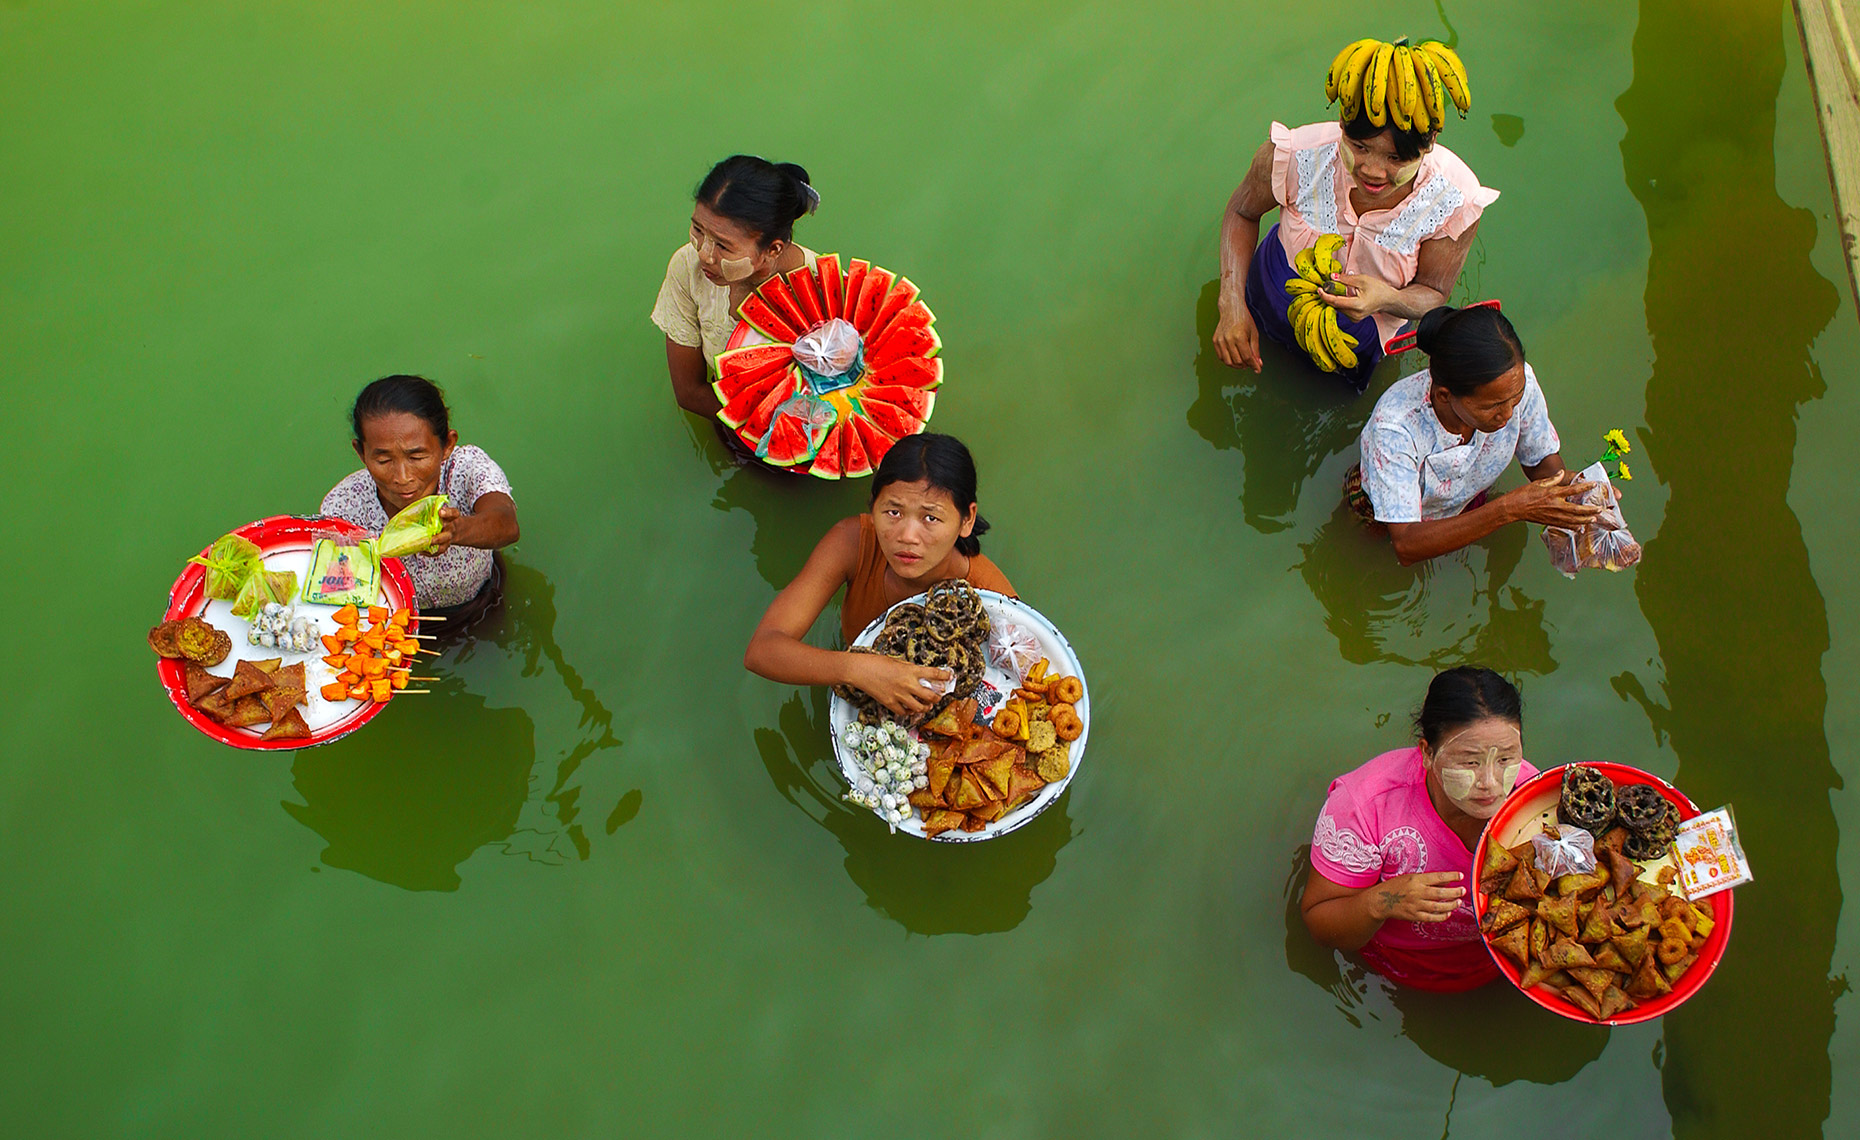 Food Vendors in River near Bagan, Burma